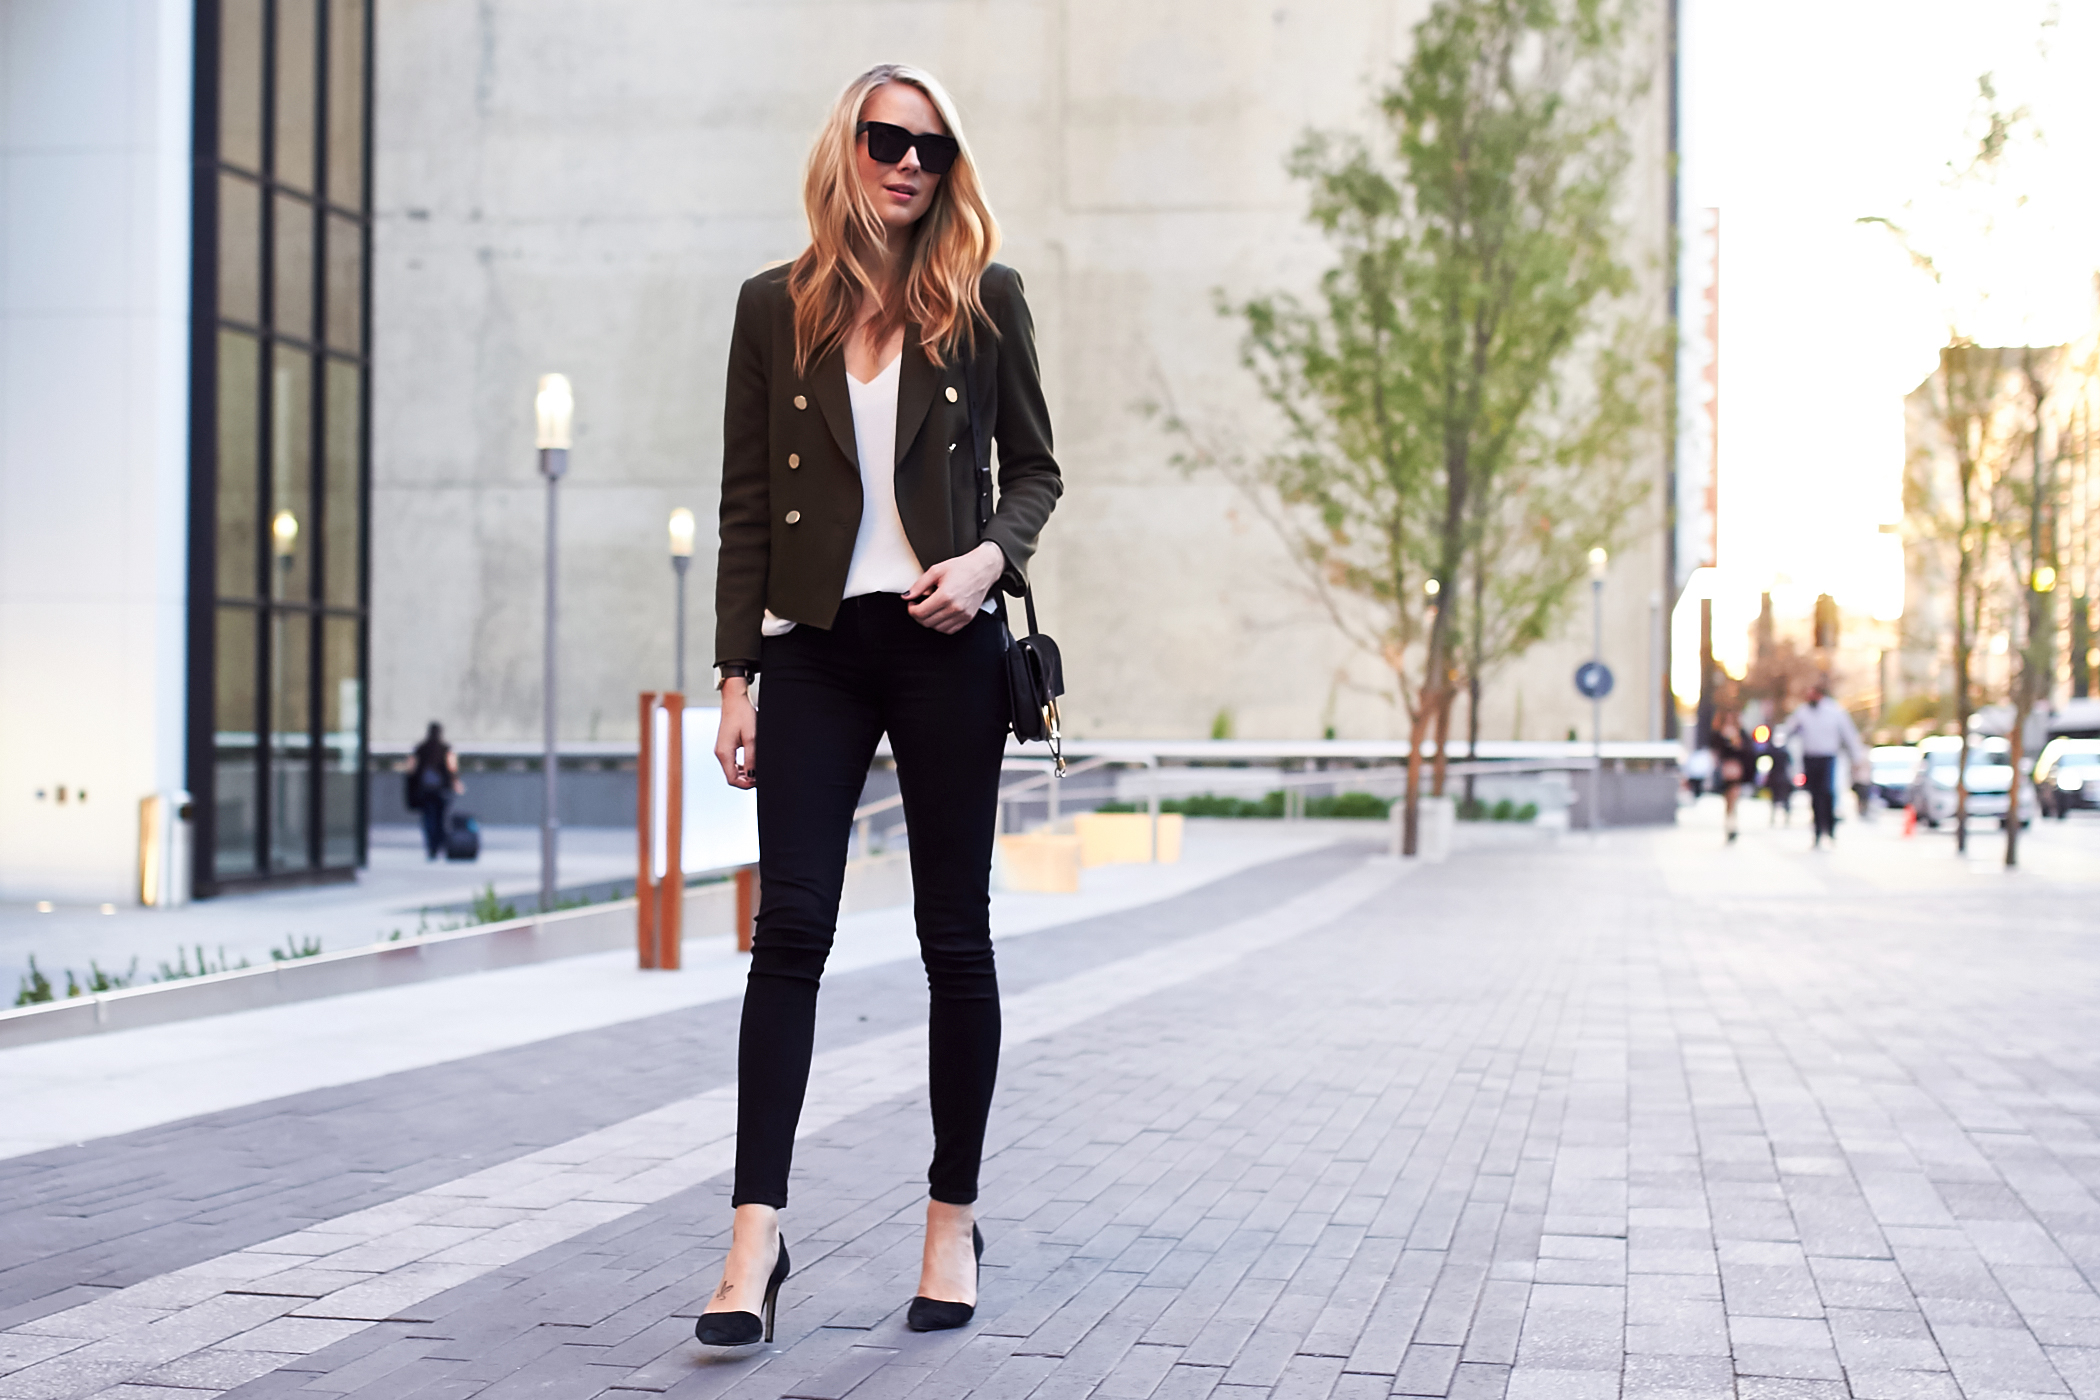 fashion-jackson-black-skinny-jeans-topshop-green-military-blazer-black-pumps